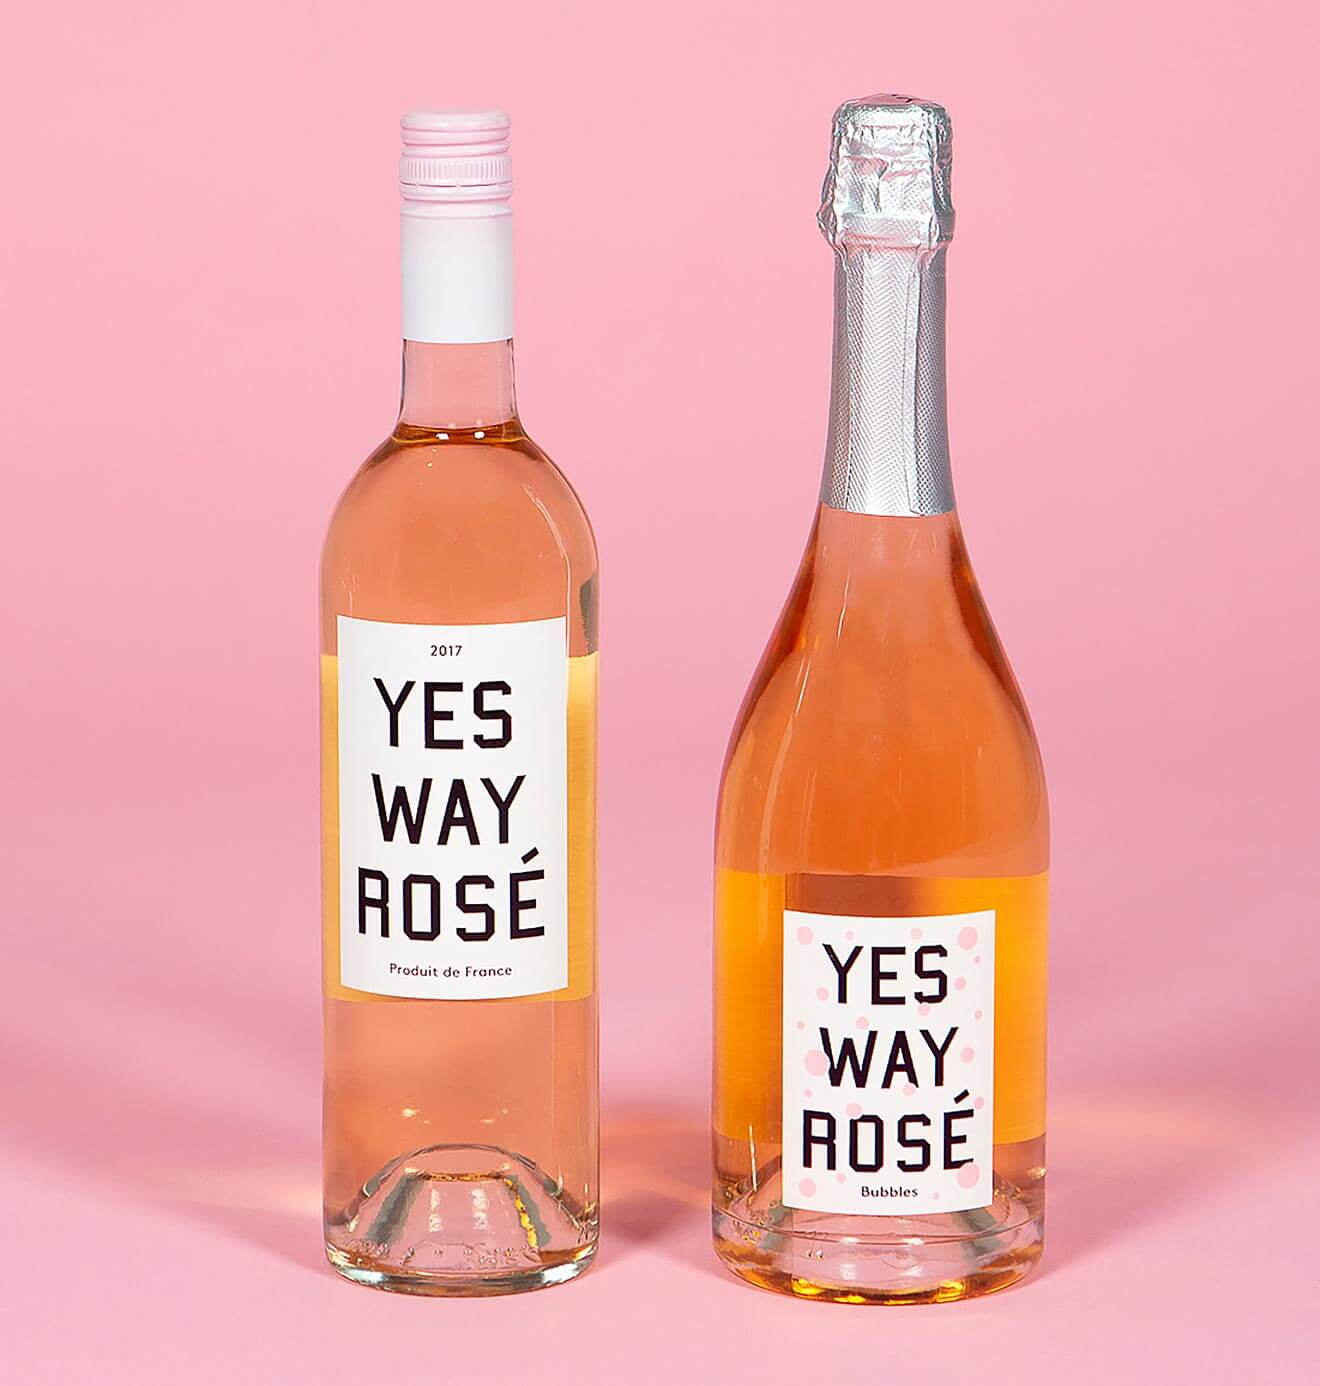 Yes Way Rosé Bubbles, rose and champagne bottles on pink